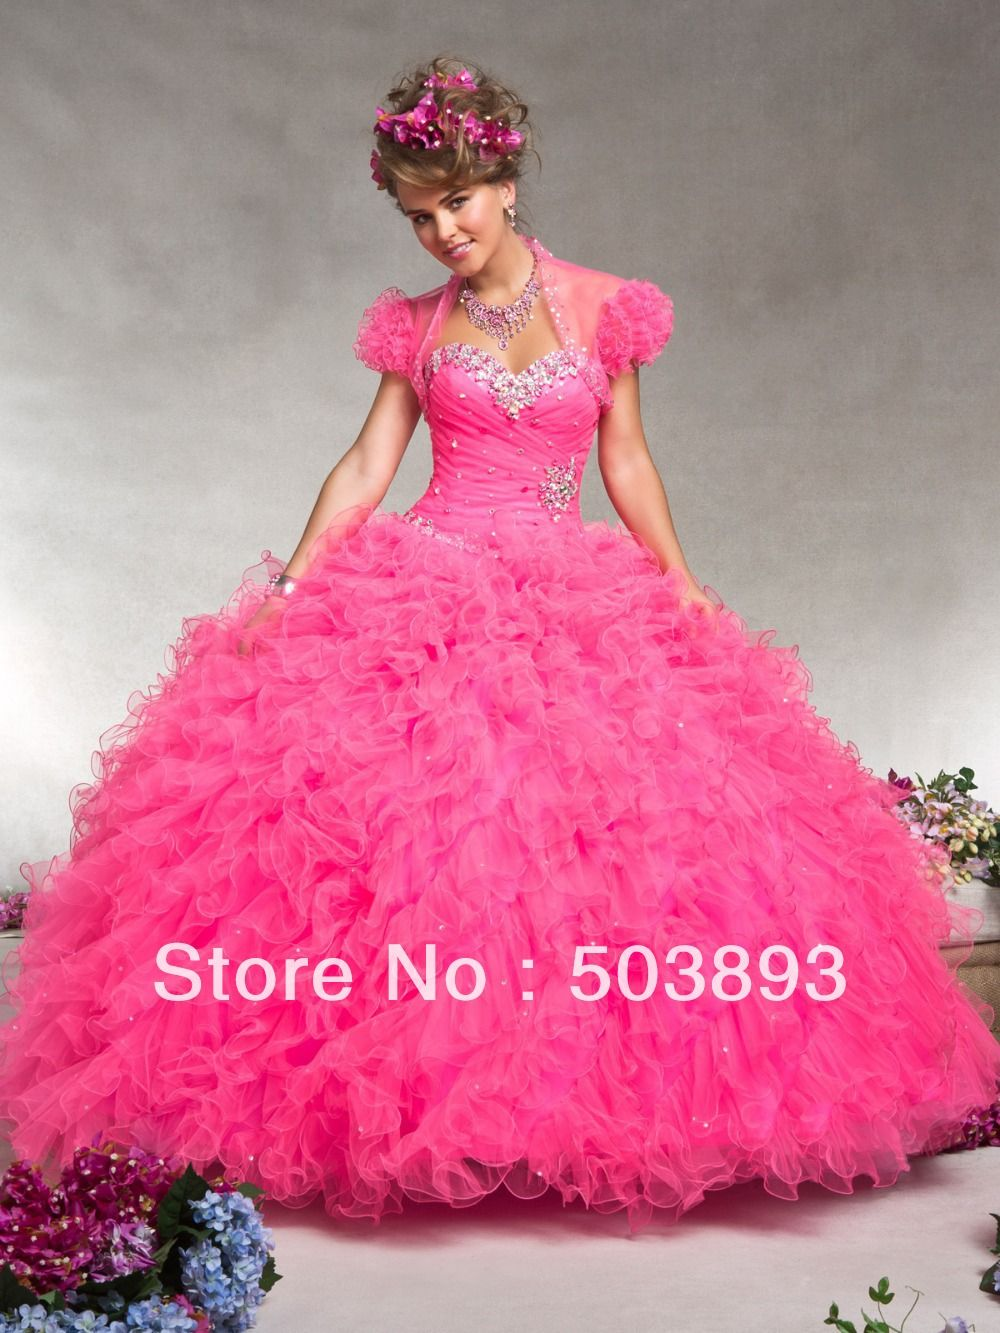 neon hot pink quinceanera dresses - Google Search | Quince ideas ...